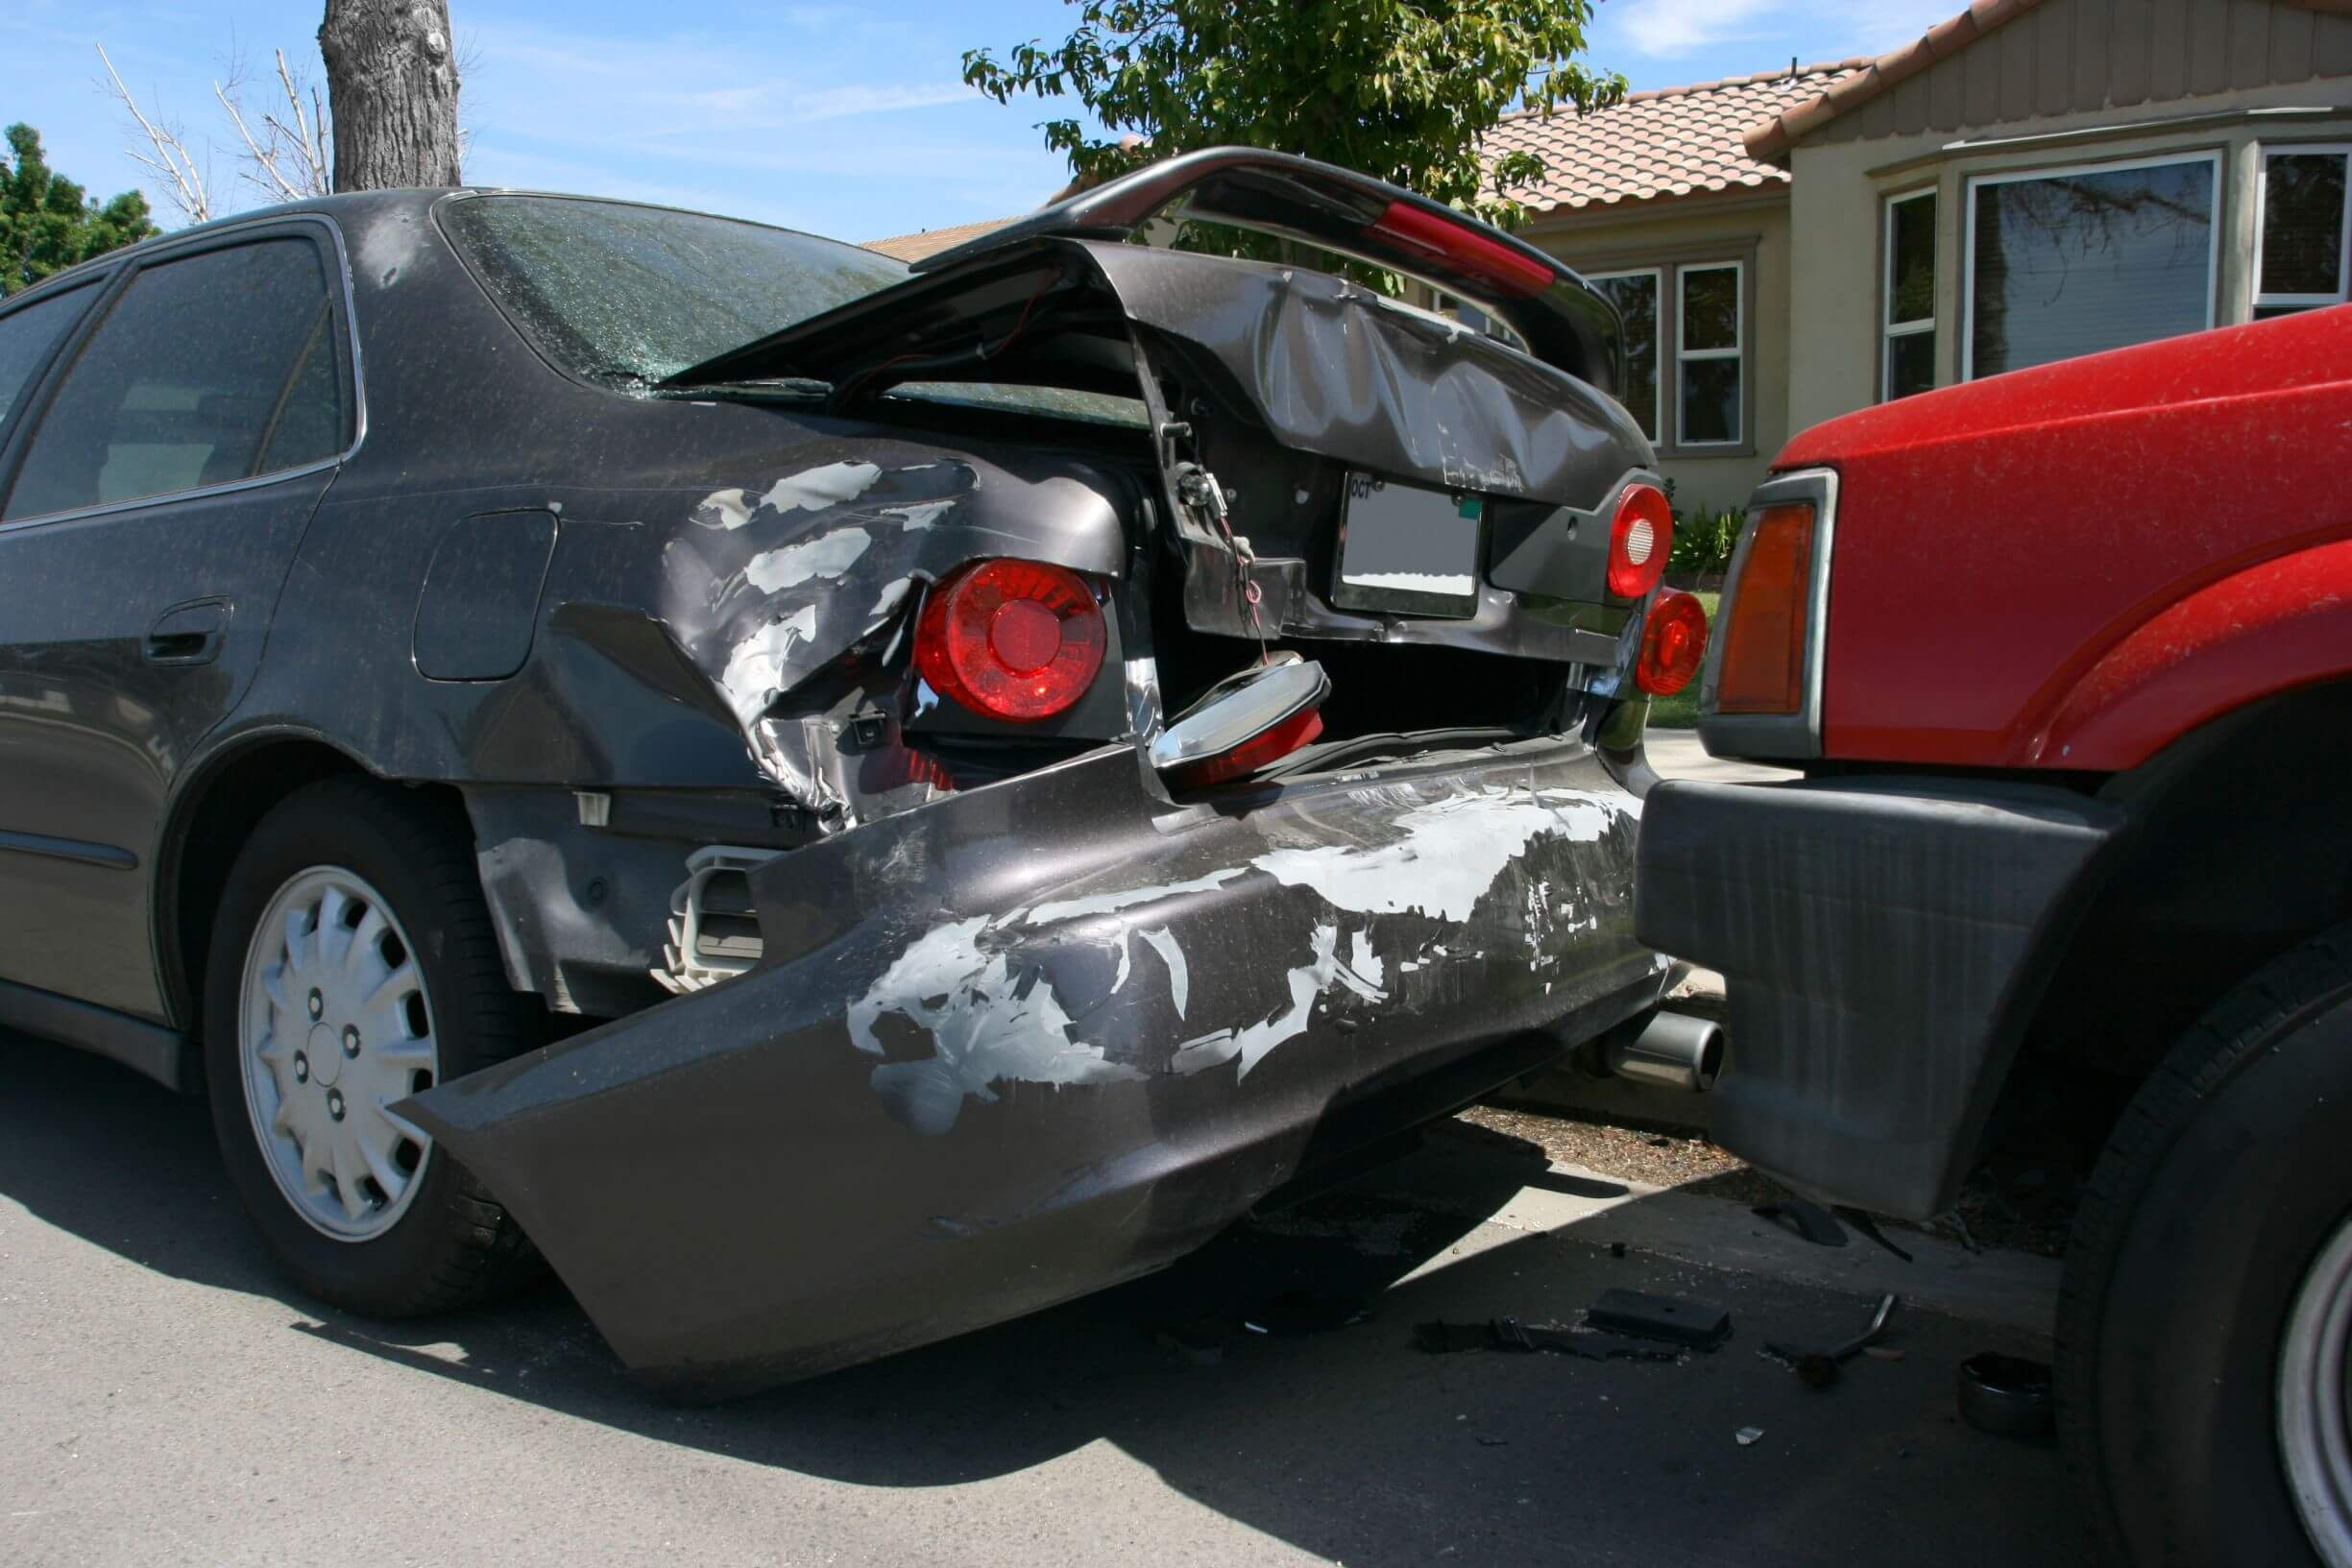 Vehicle that has been involved in a rear-end collison